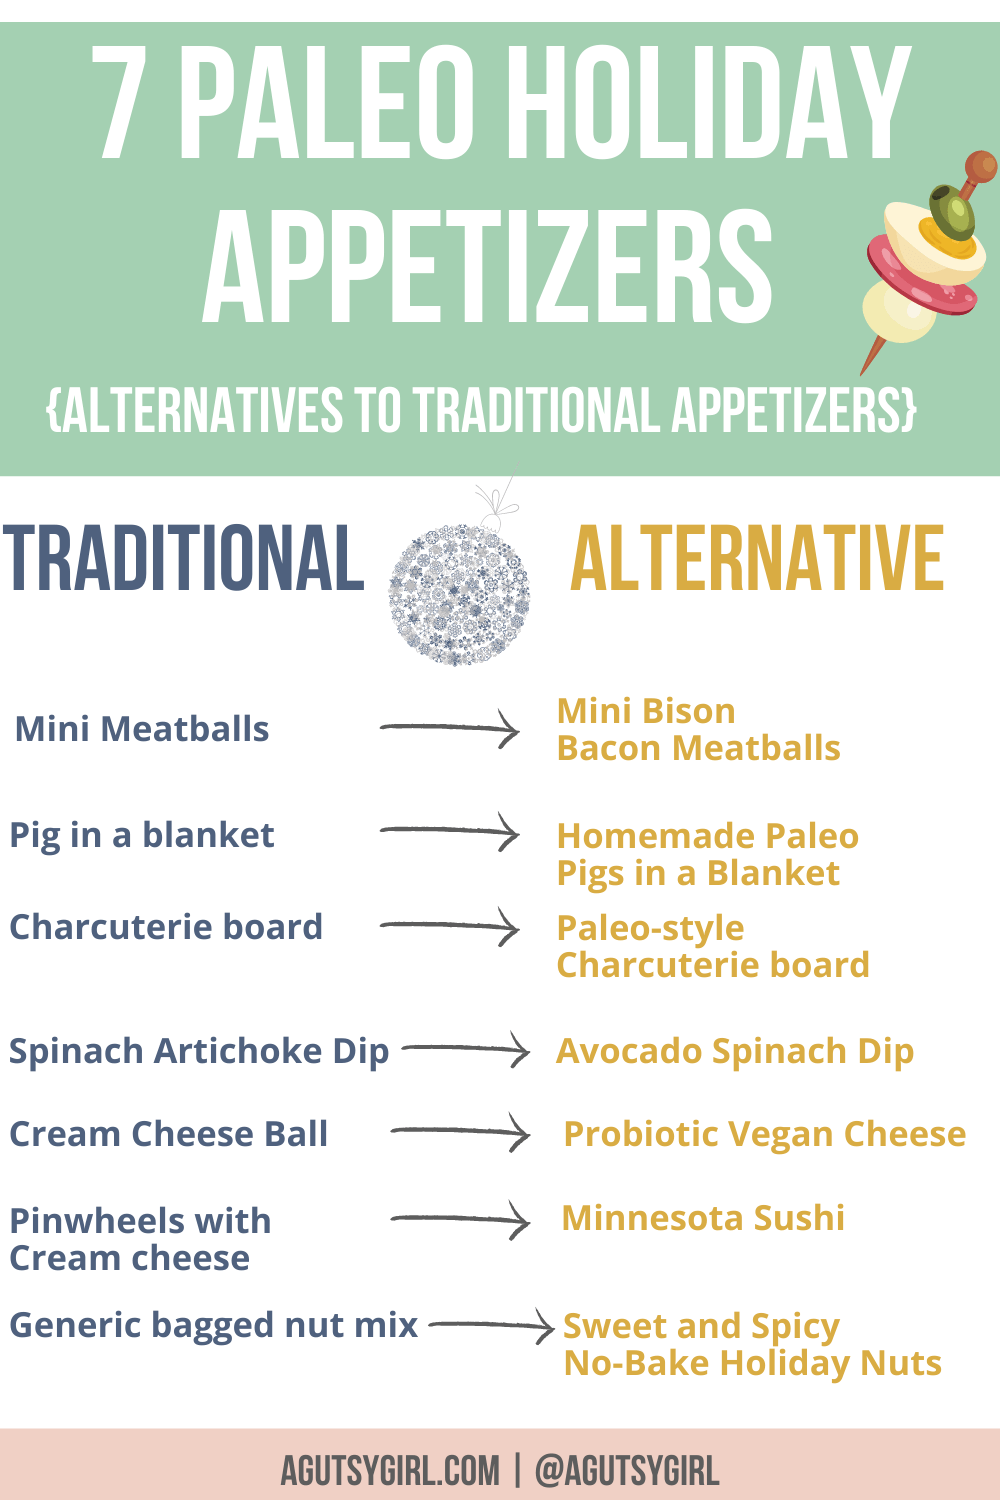 7 Paleo Holiday Appetizers Alternatives to Traditional Appetizers agutsygirl.com #guthealth #holidayappetizers #paleoappetizers